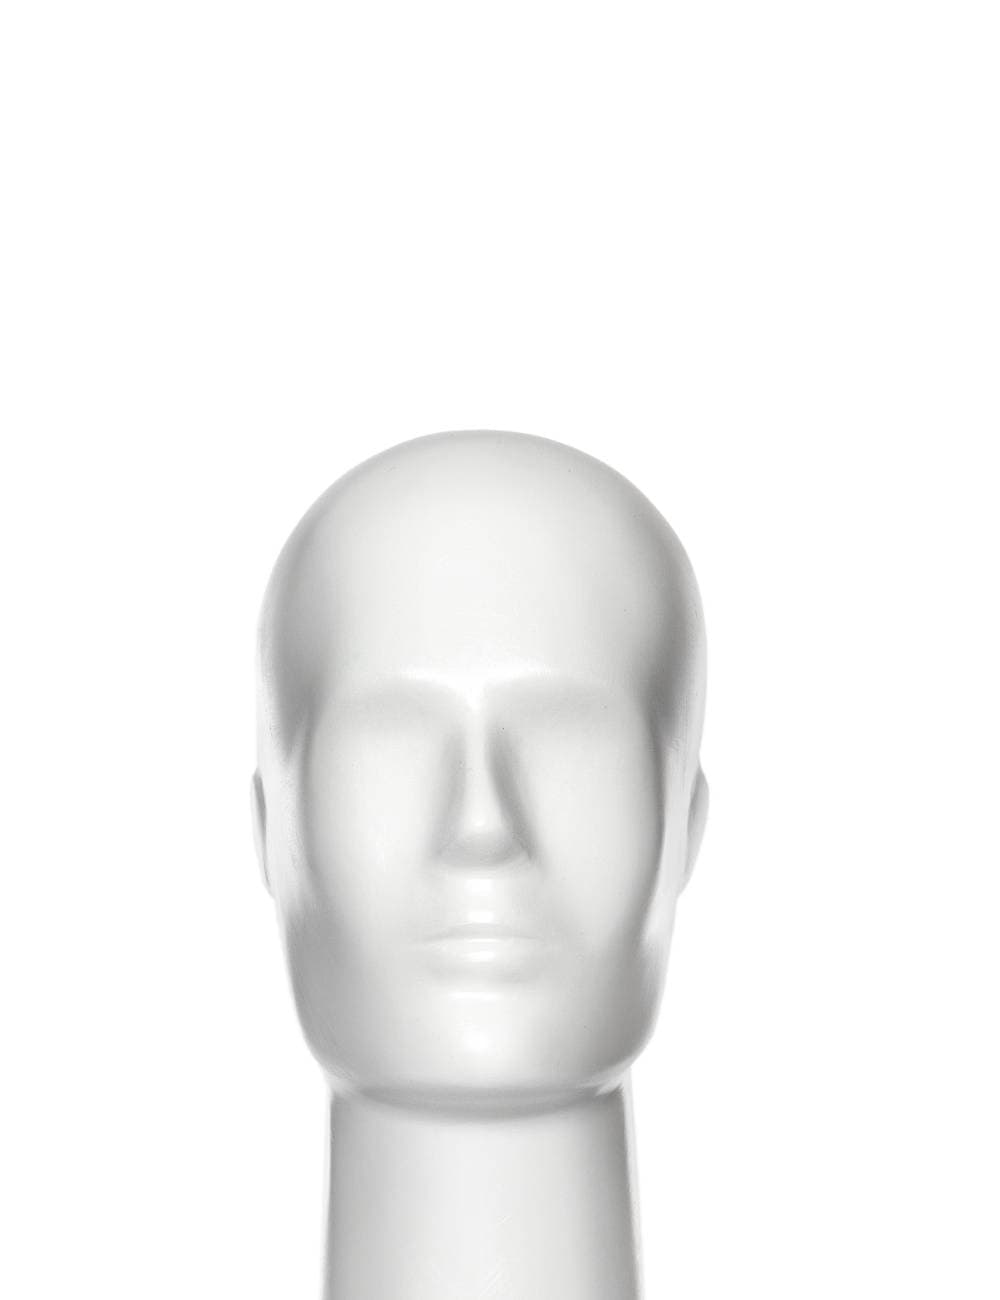 Fixed or removable head